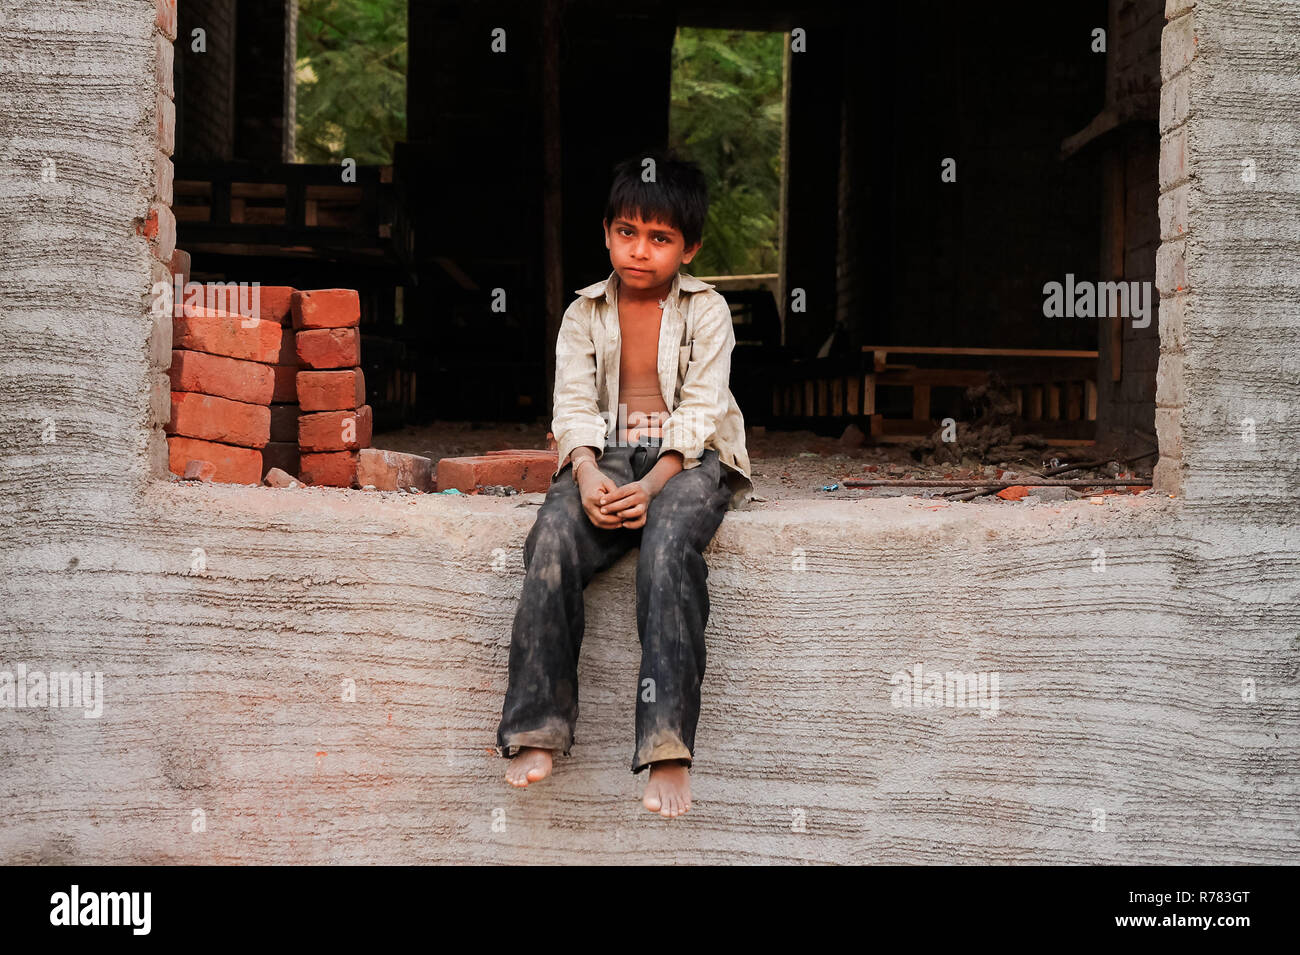 New delhi, India - 20 october 2017: portrait of young indian boy working as bricklayer in construction with dirty clothes and sad face with resignatio - Stock Image